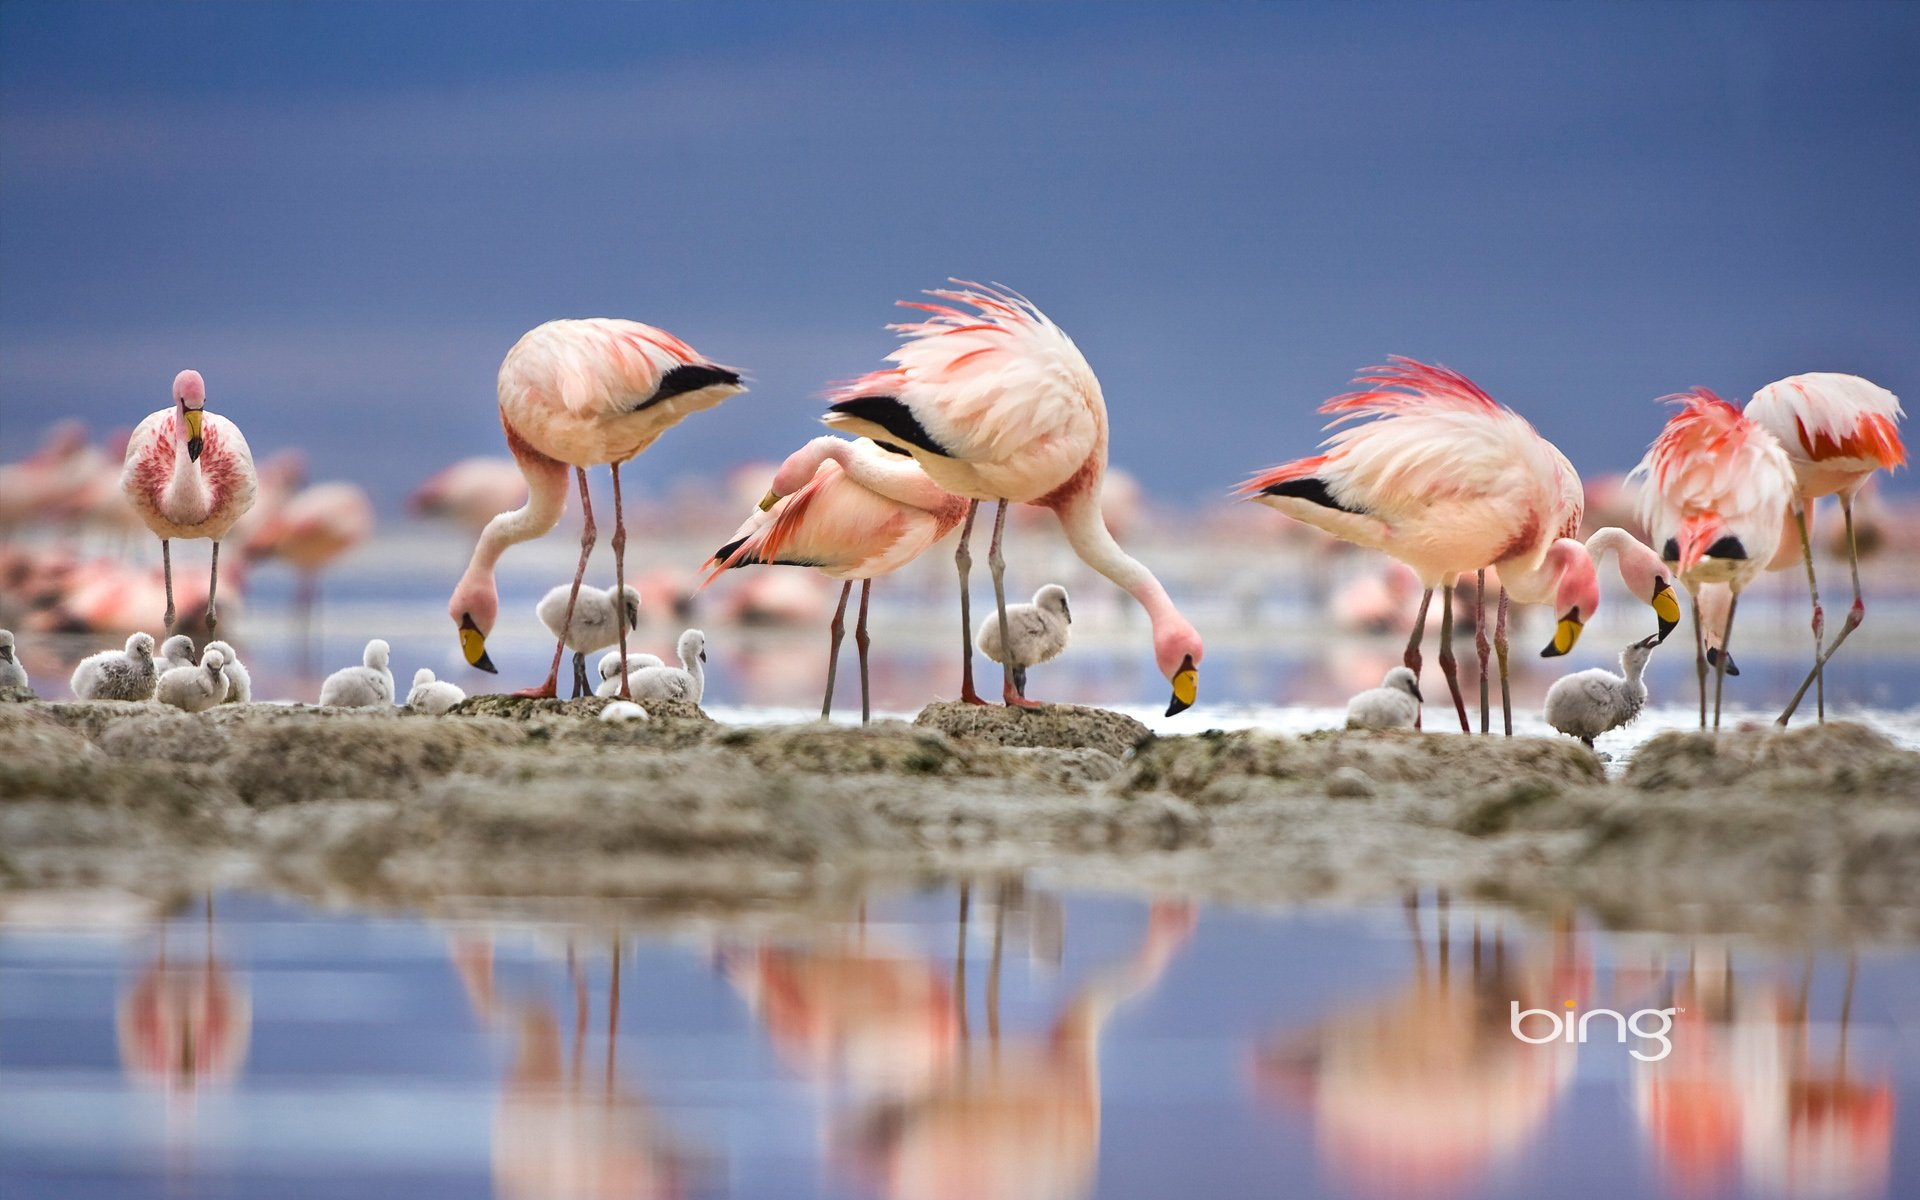 Flamingo Full HD Wallpaper and Background Image ...